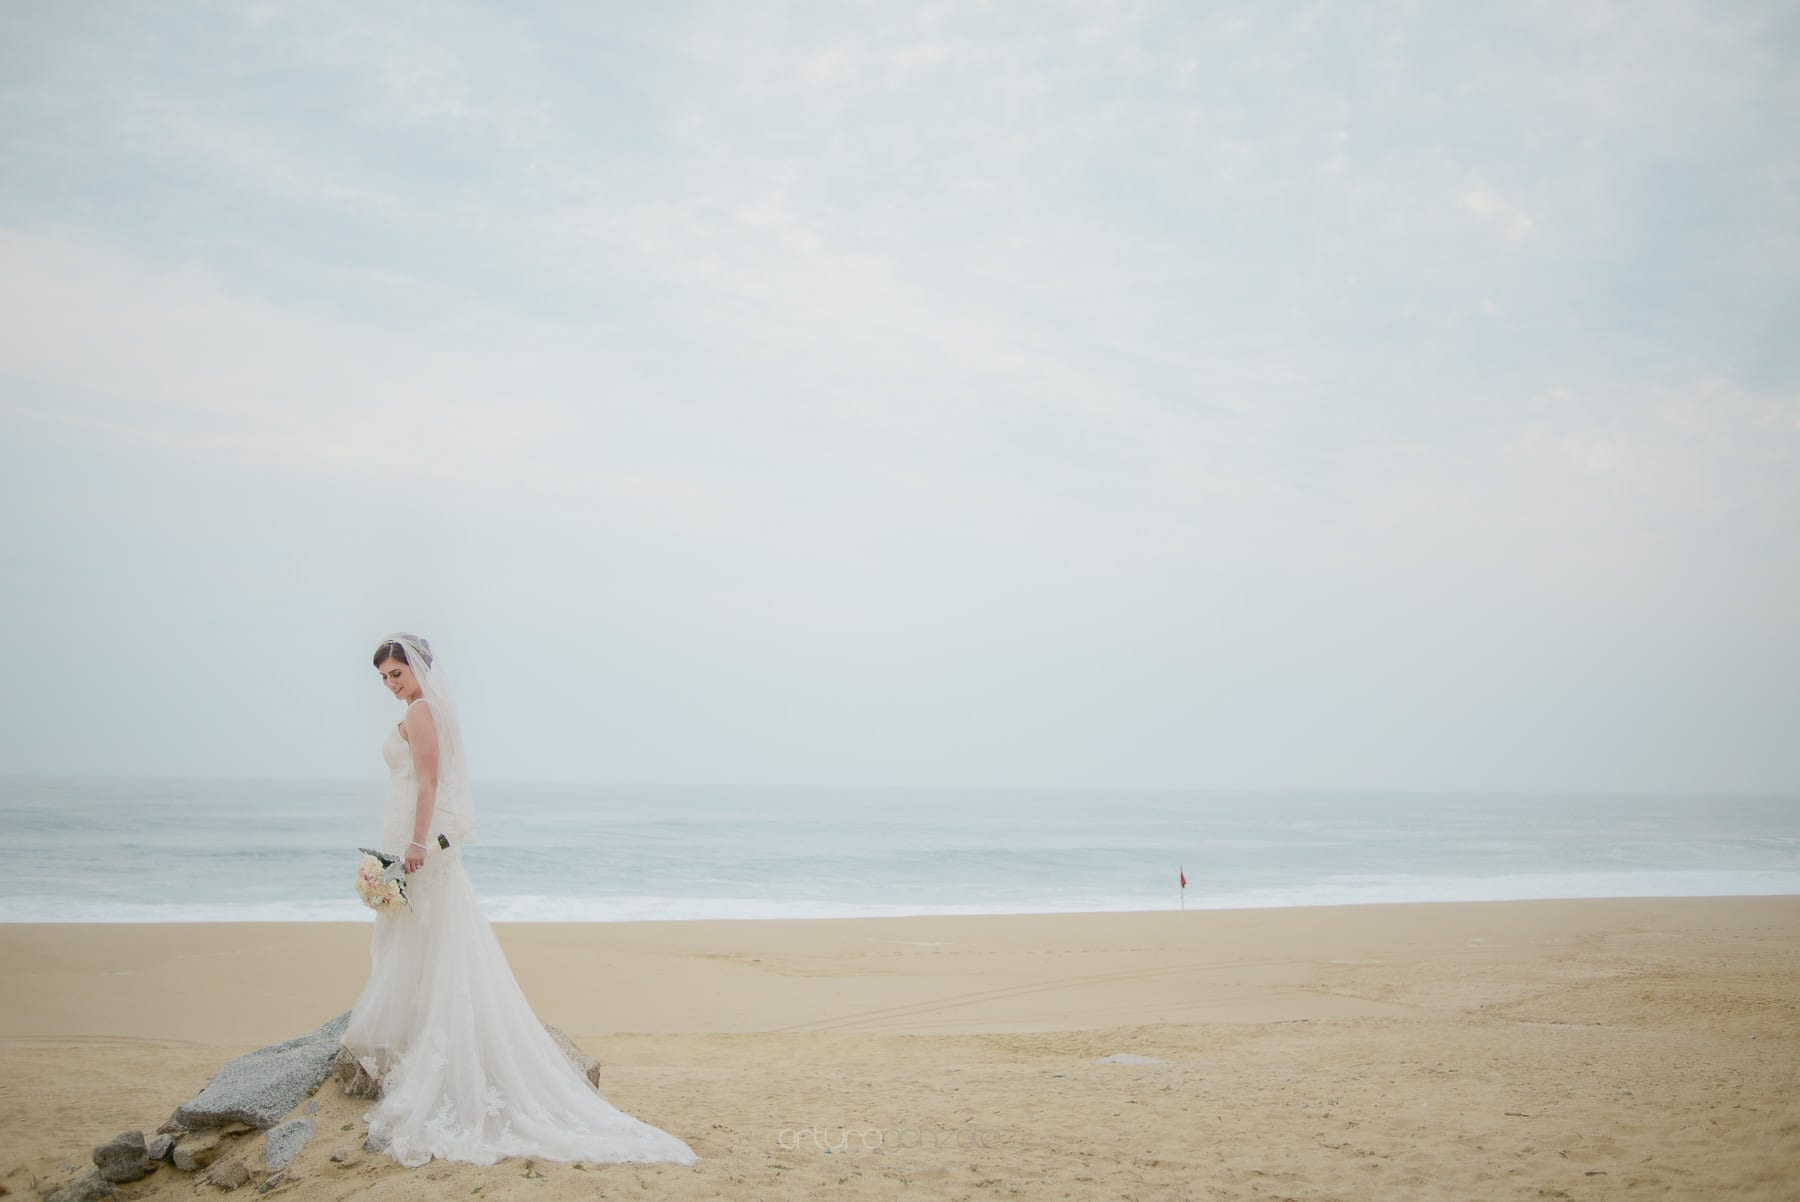 wedding-photos-pueblo-bonito-sunset-beach-4621